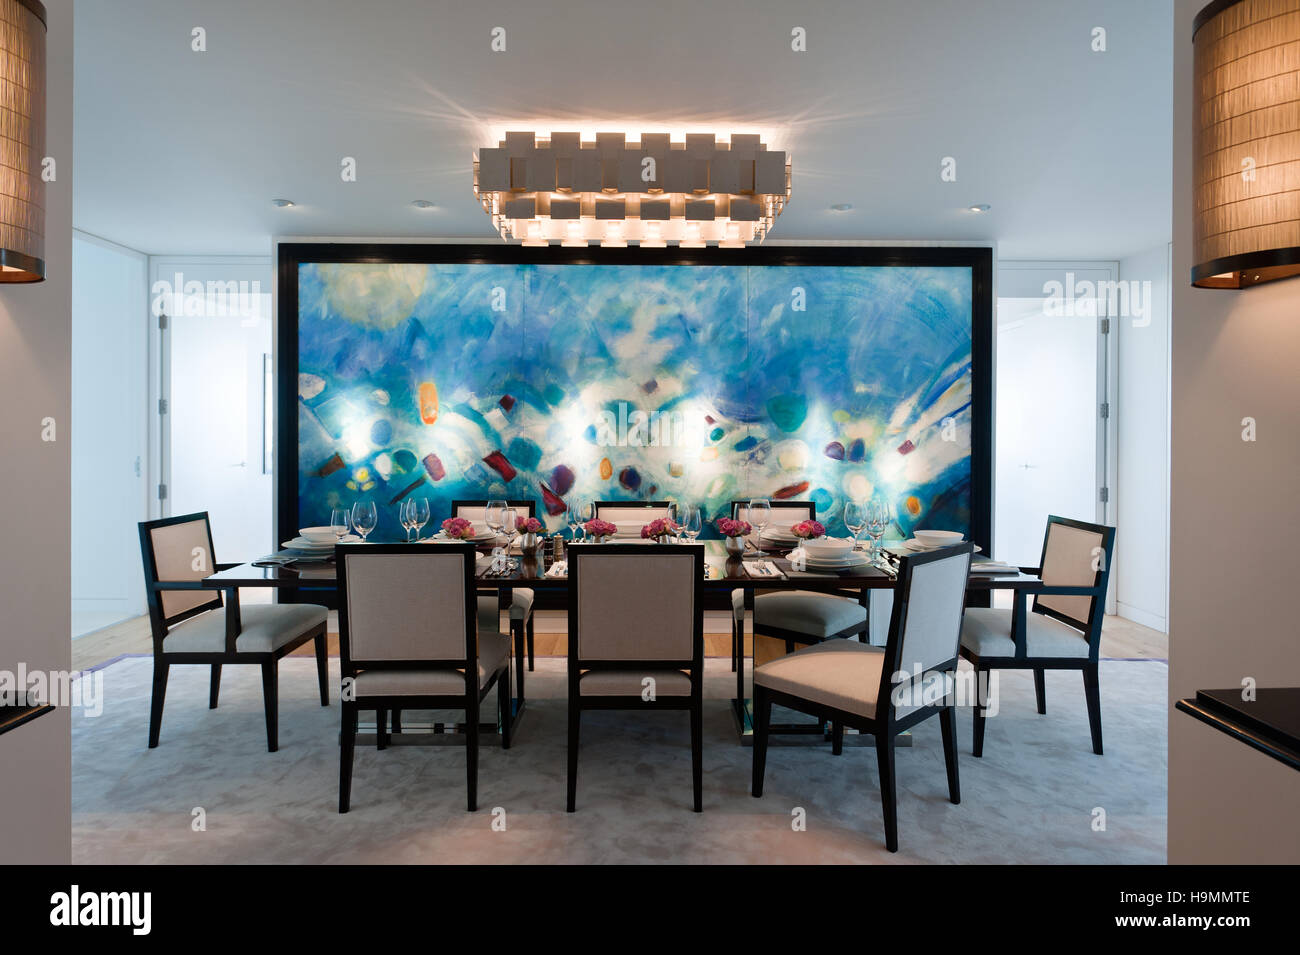 Dining Table With Large Modern Art Canvas In Flat By Collett Zarzycki Property Development Richard Rogers Bankside Central London UK